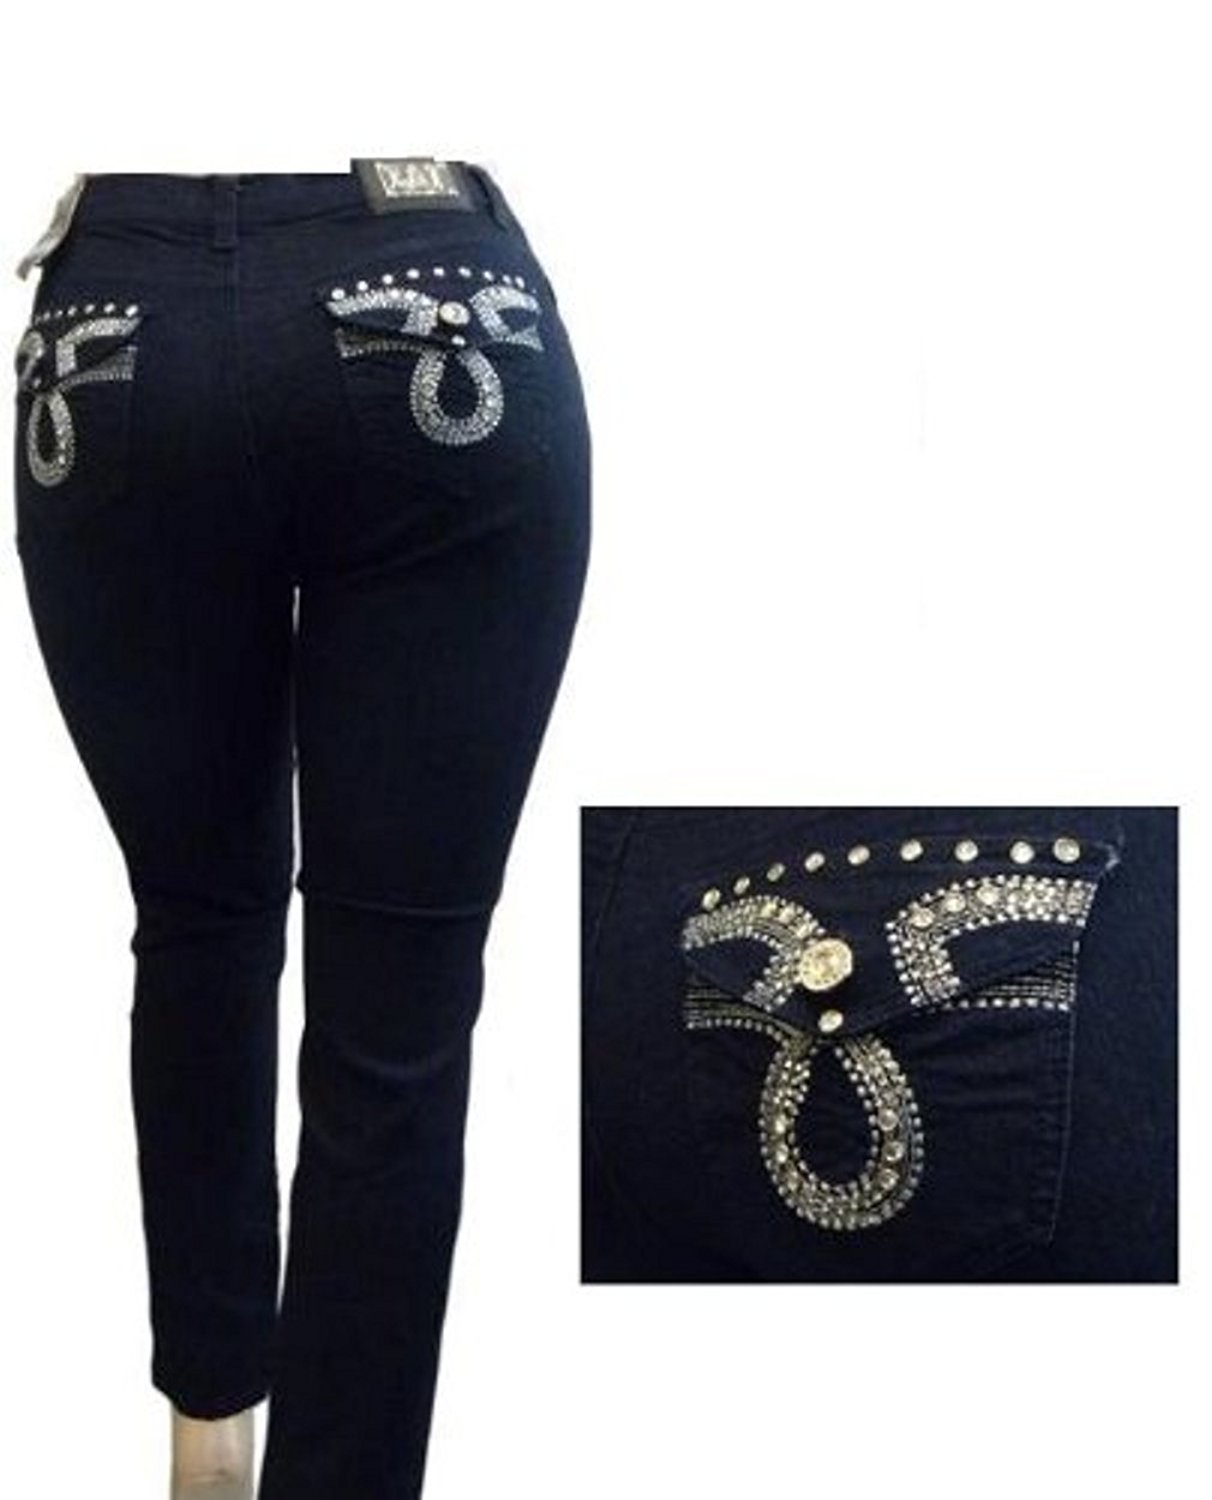 Jeans Company Company on La line at La deals Jeans find Cheap Y5EHH